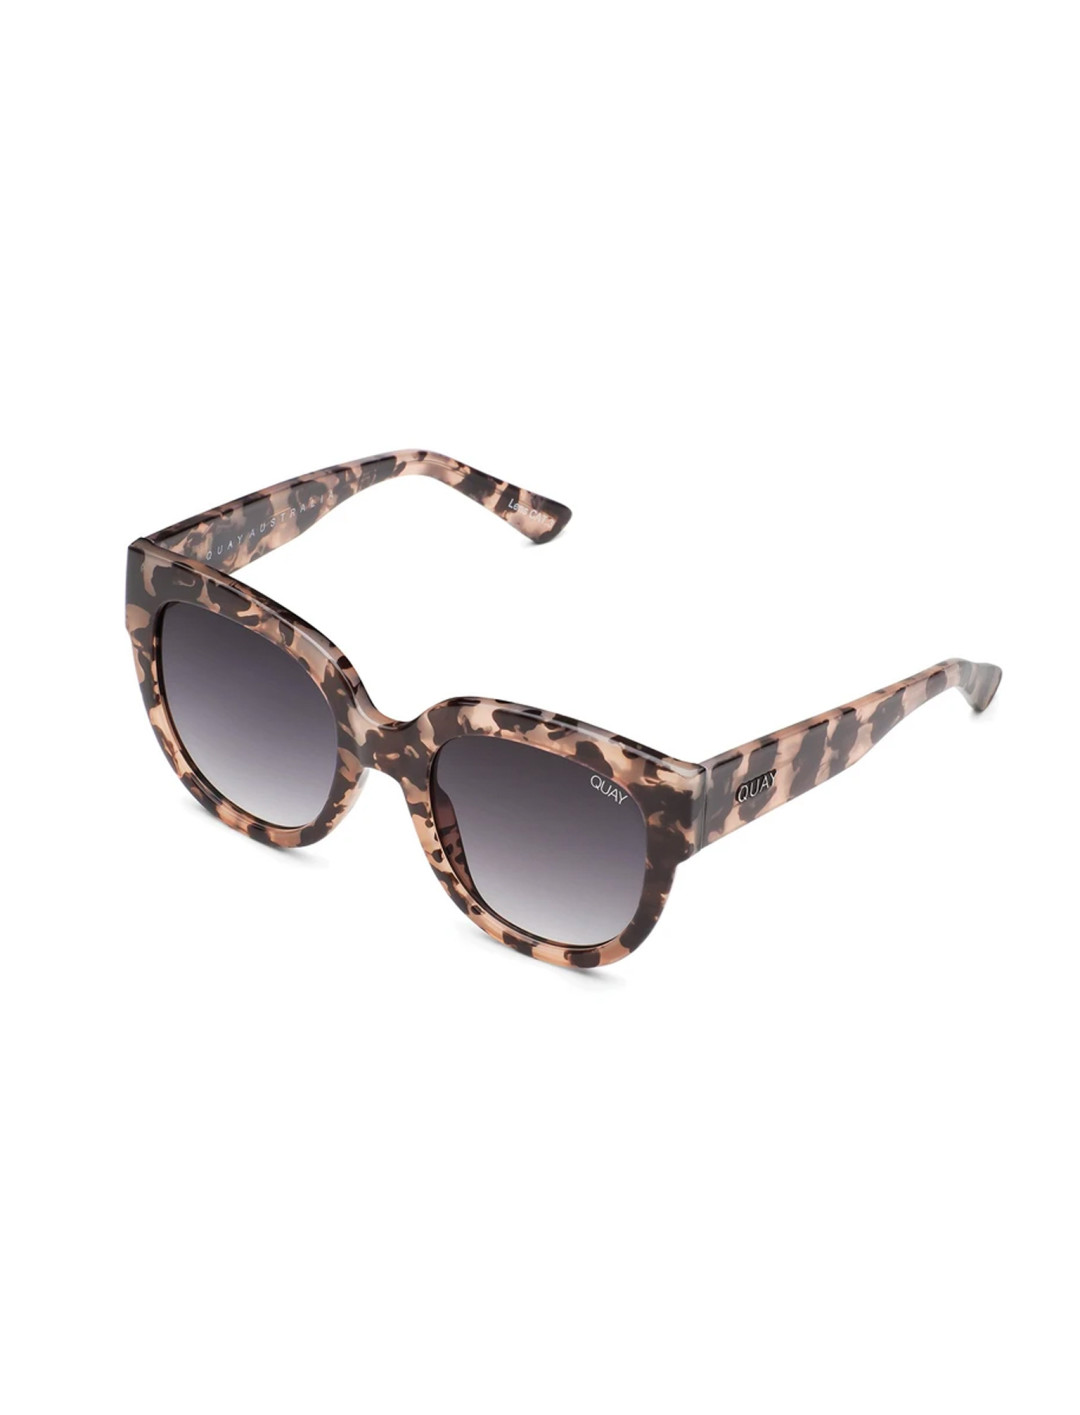 Limelight Sunglasses